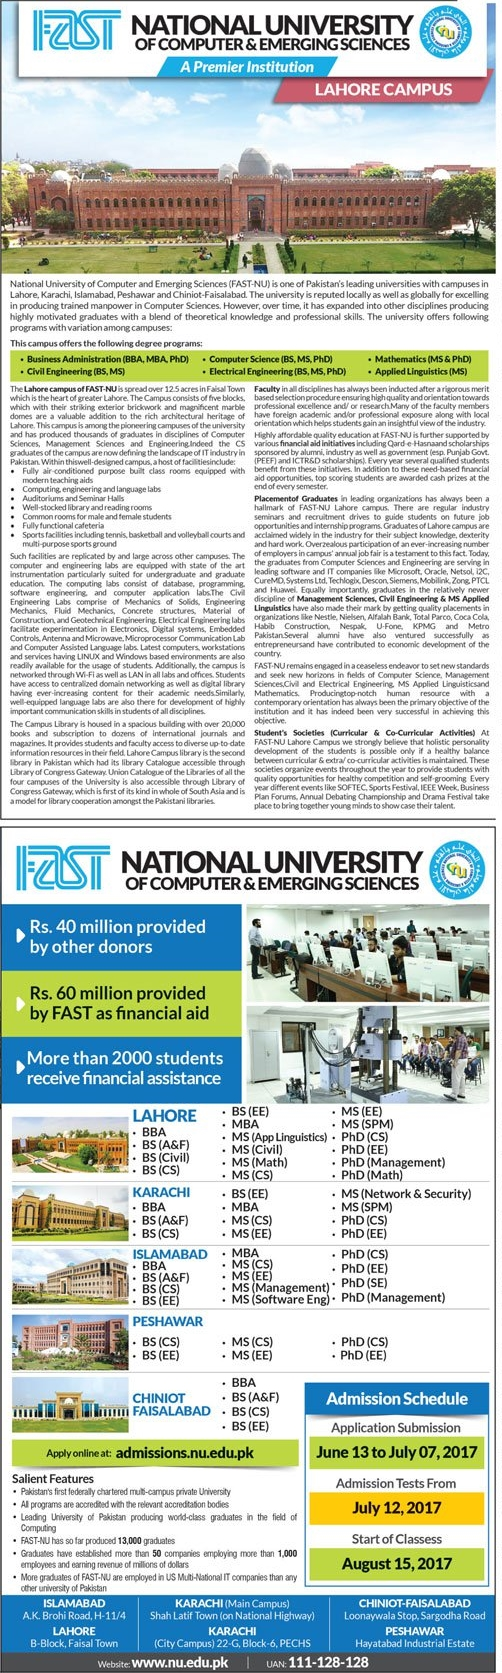 FAST National University Of Computer And Emerging Sciences Admission 2017 Application form Test Schedule online Apply